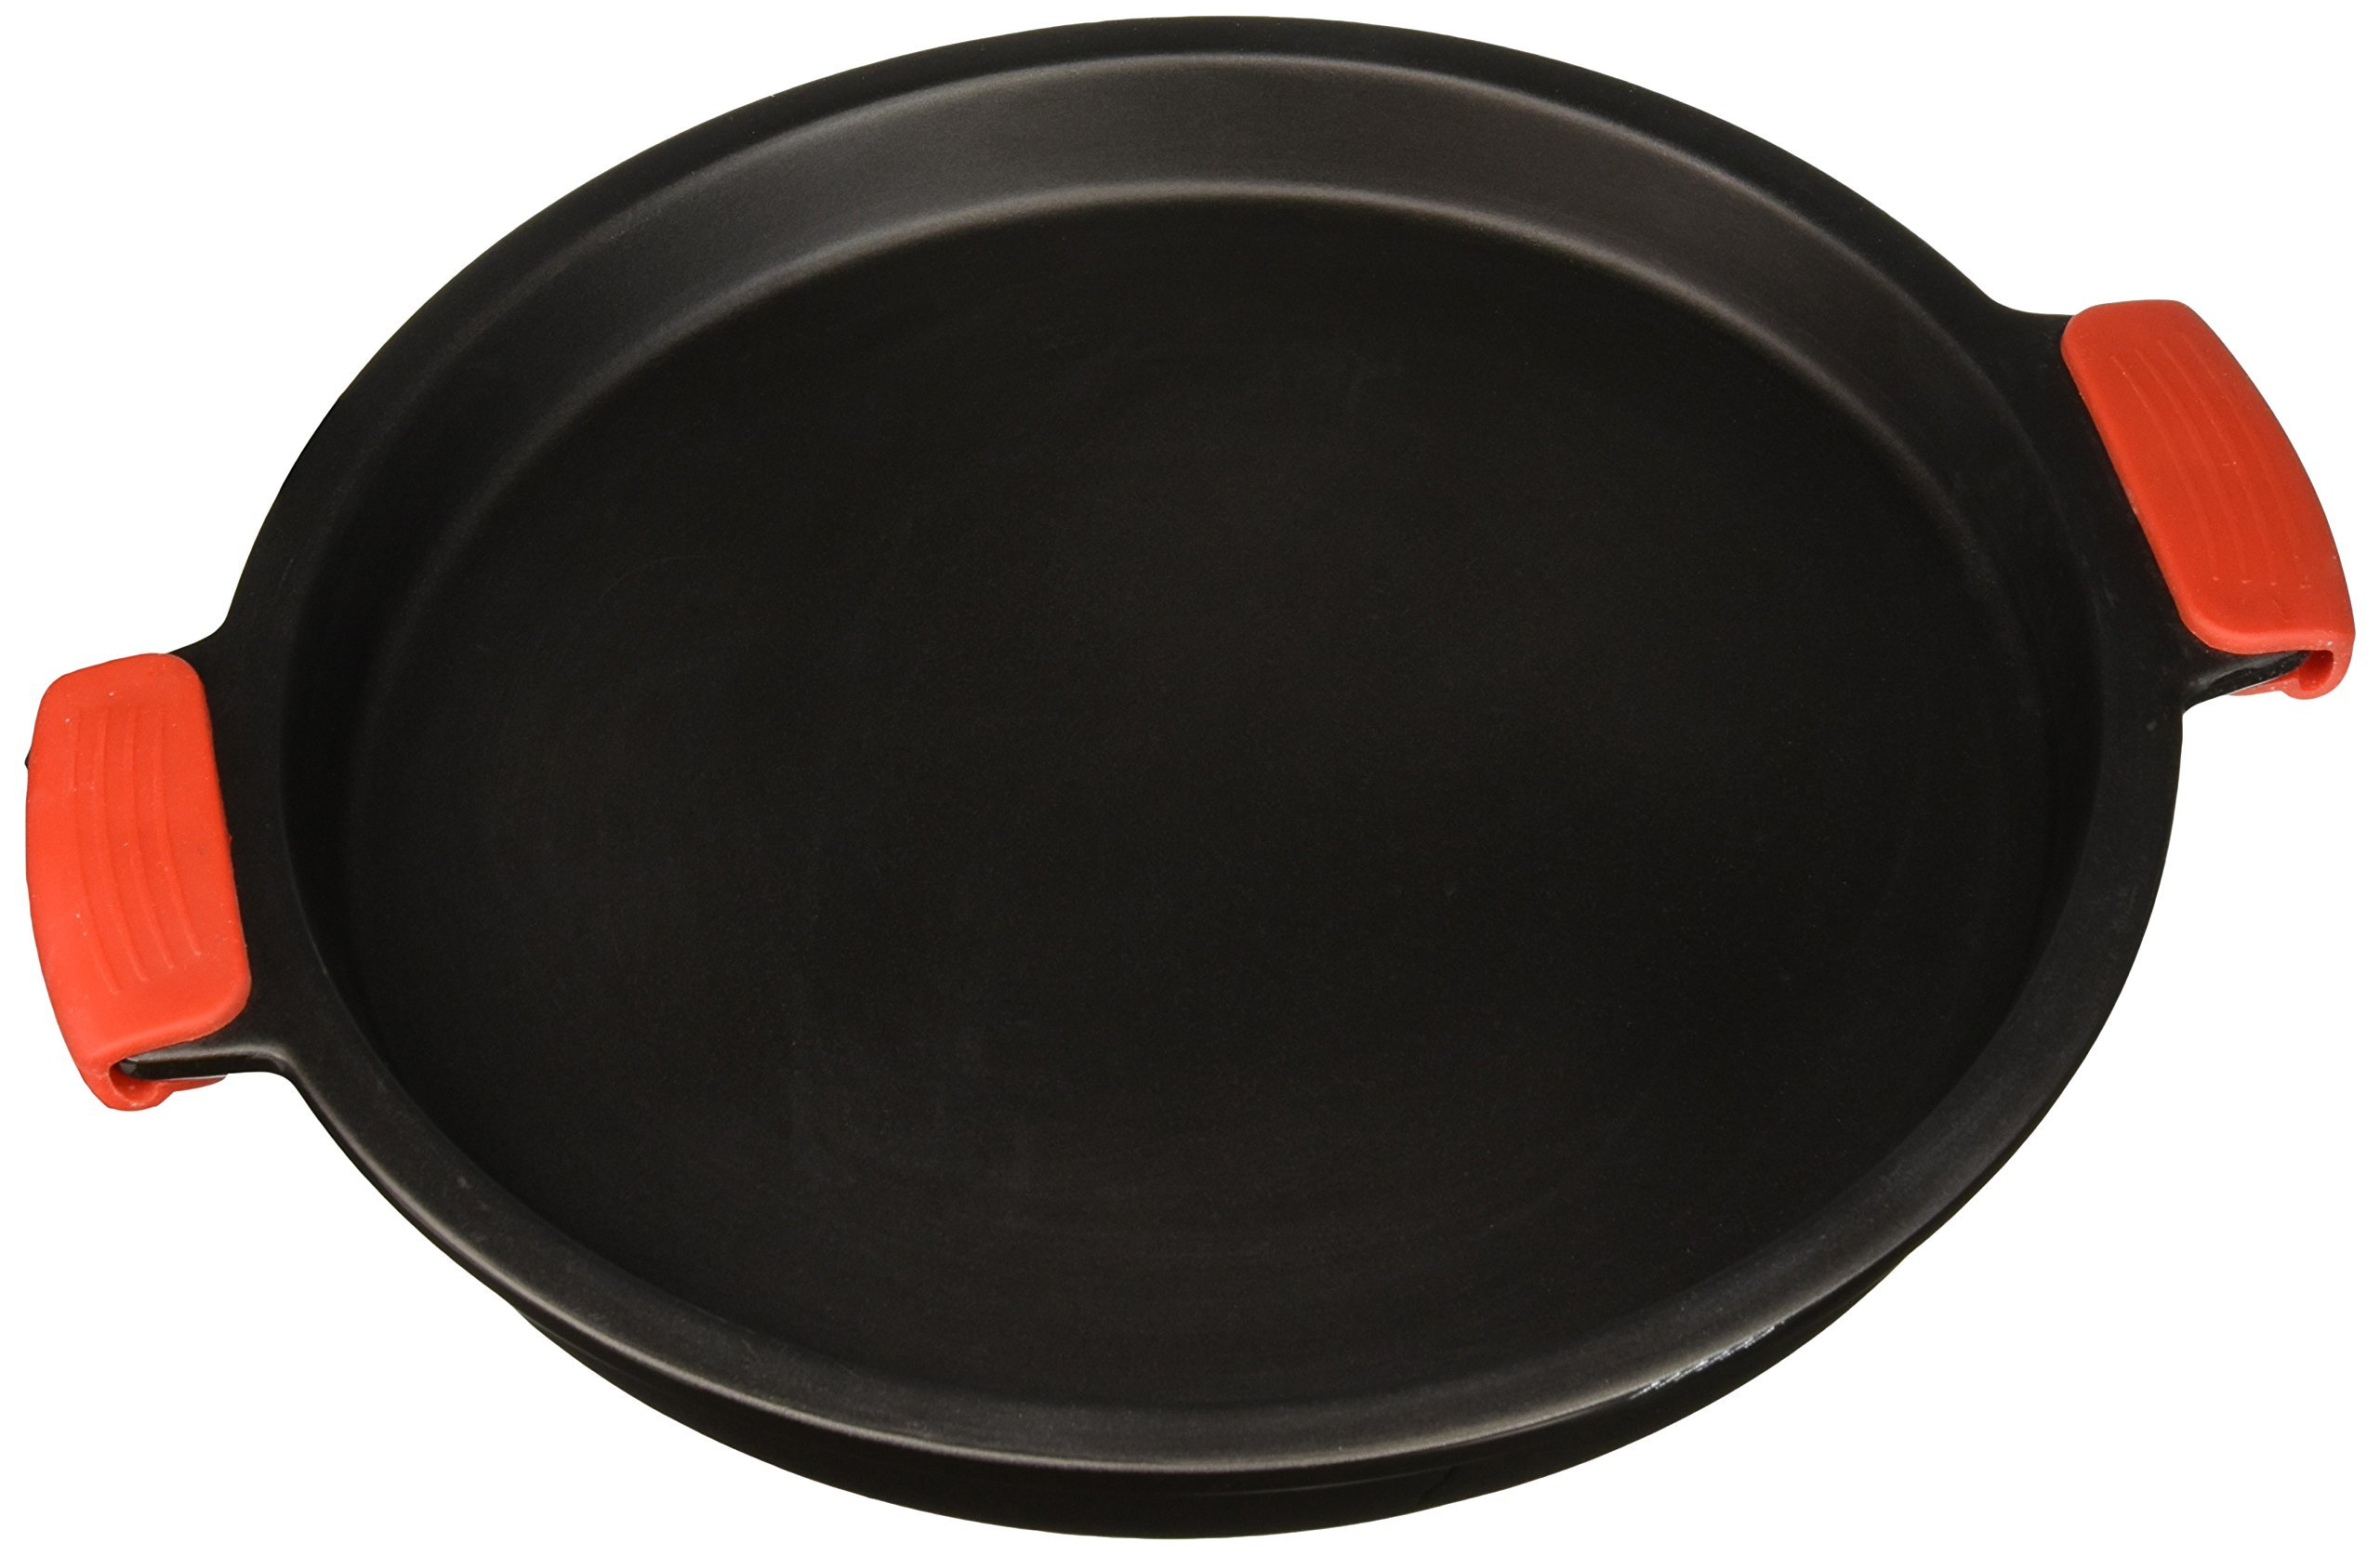 SuperStone / 13'' Deep-Dish Non-Stick Pizza Stone with Easy-Grip Silicone Handles by Sassafras